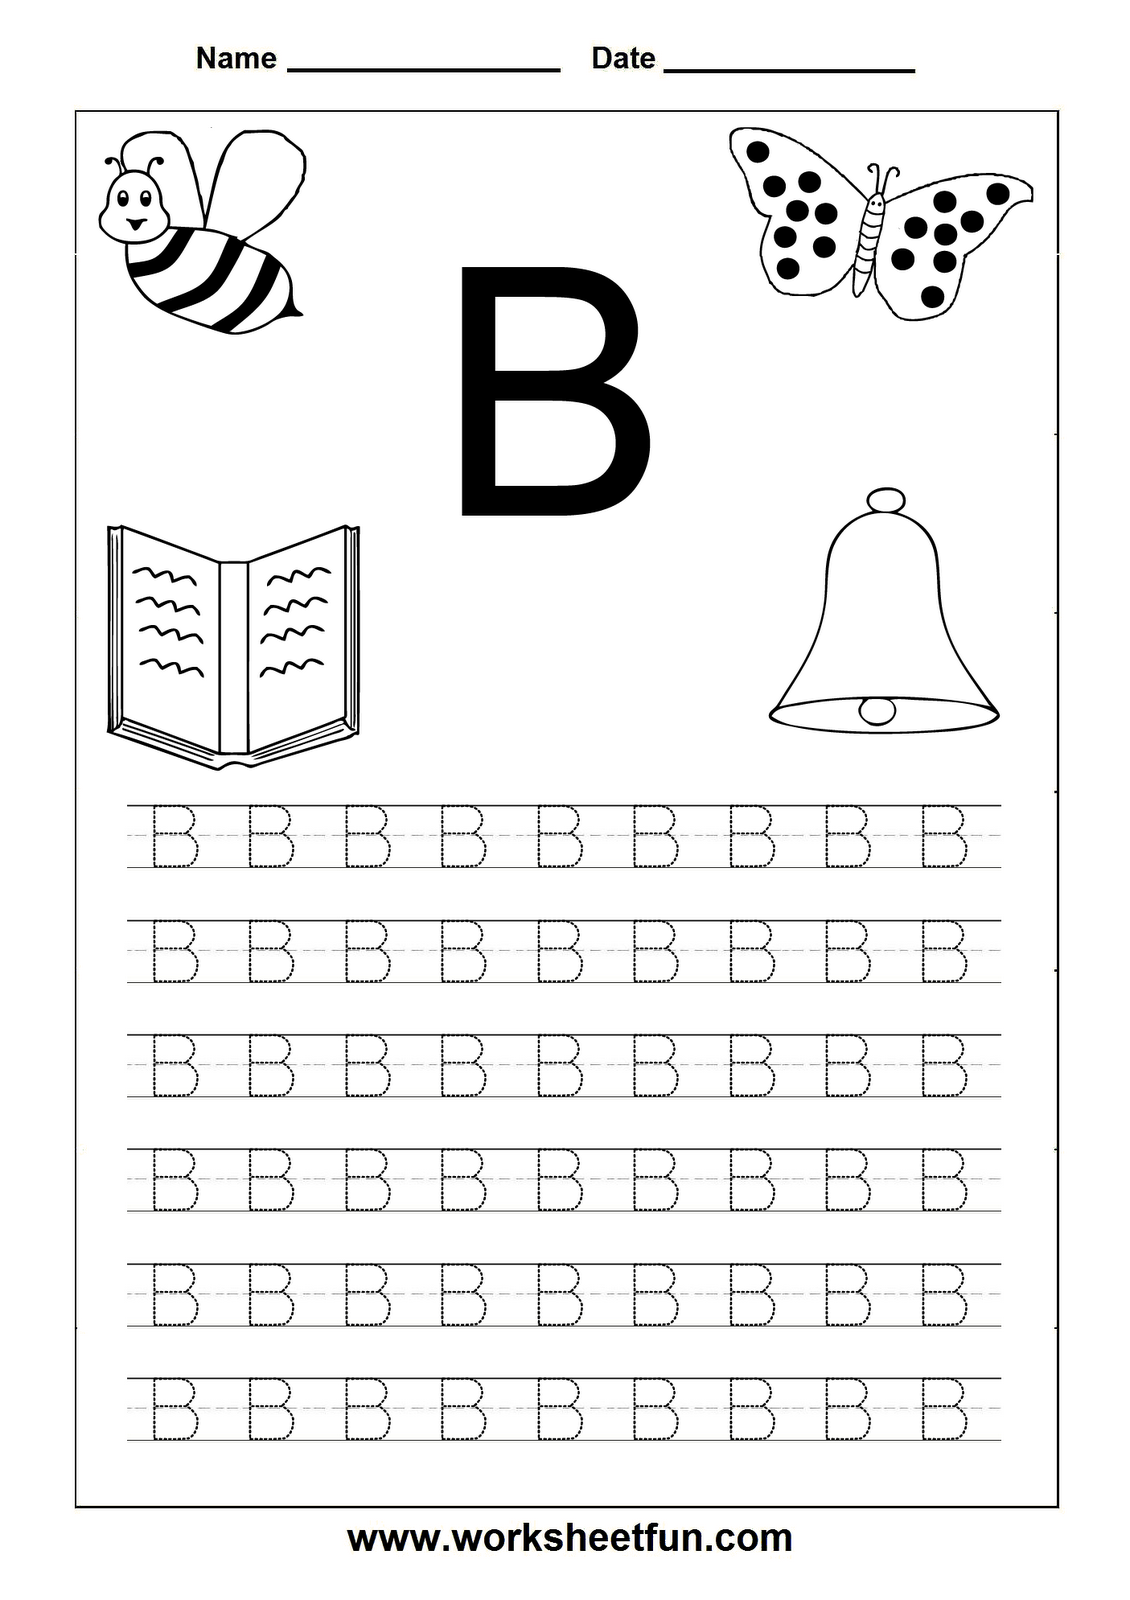 math worksheet : pictures tracing abc letter worksheets  dropwin : Alphabet Tracing Worksheets For Kindergarten